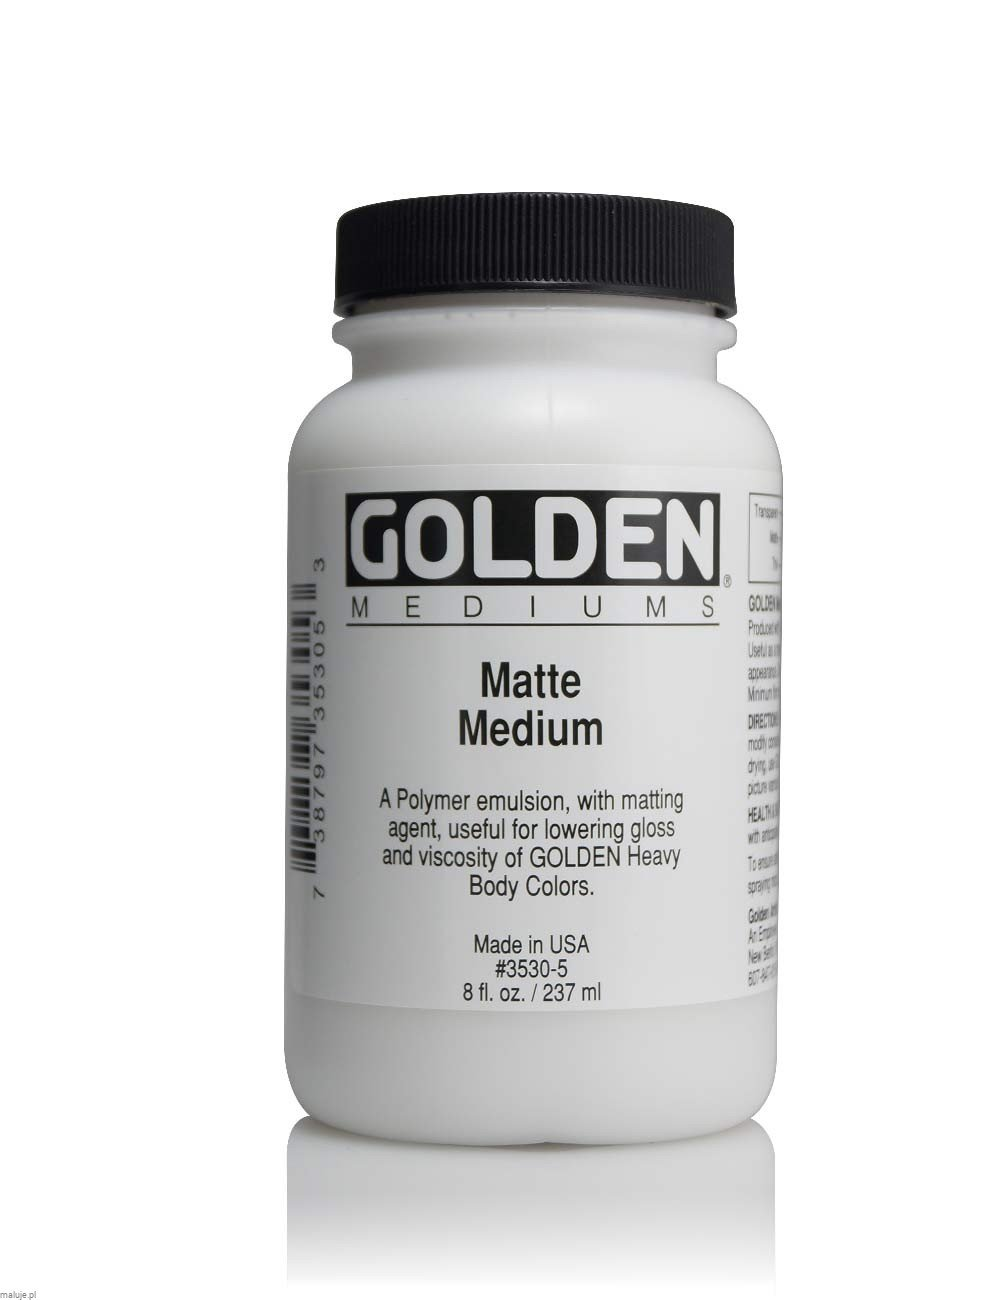 Golden Matte Medium Matowe